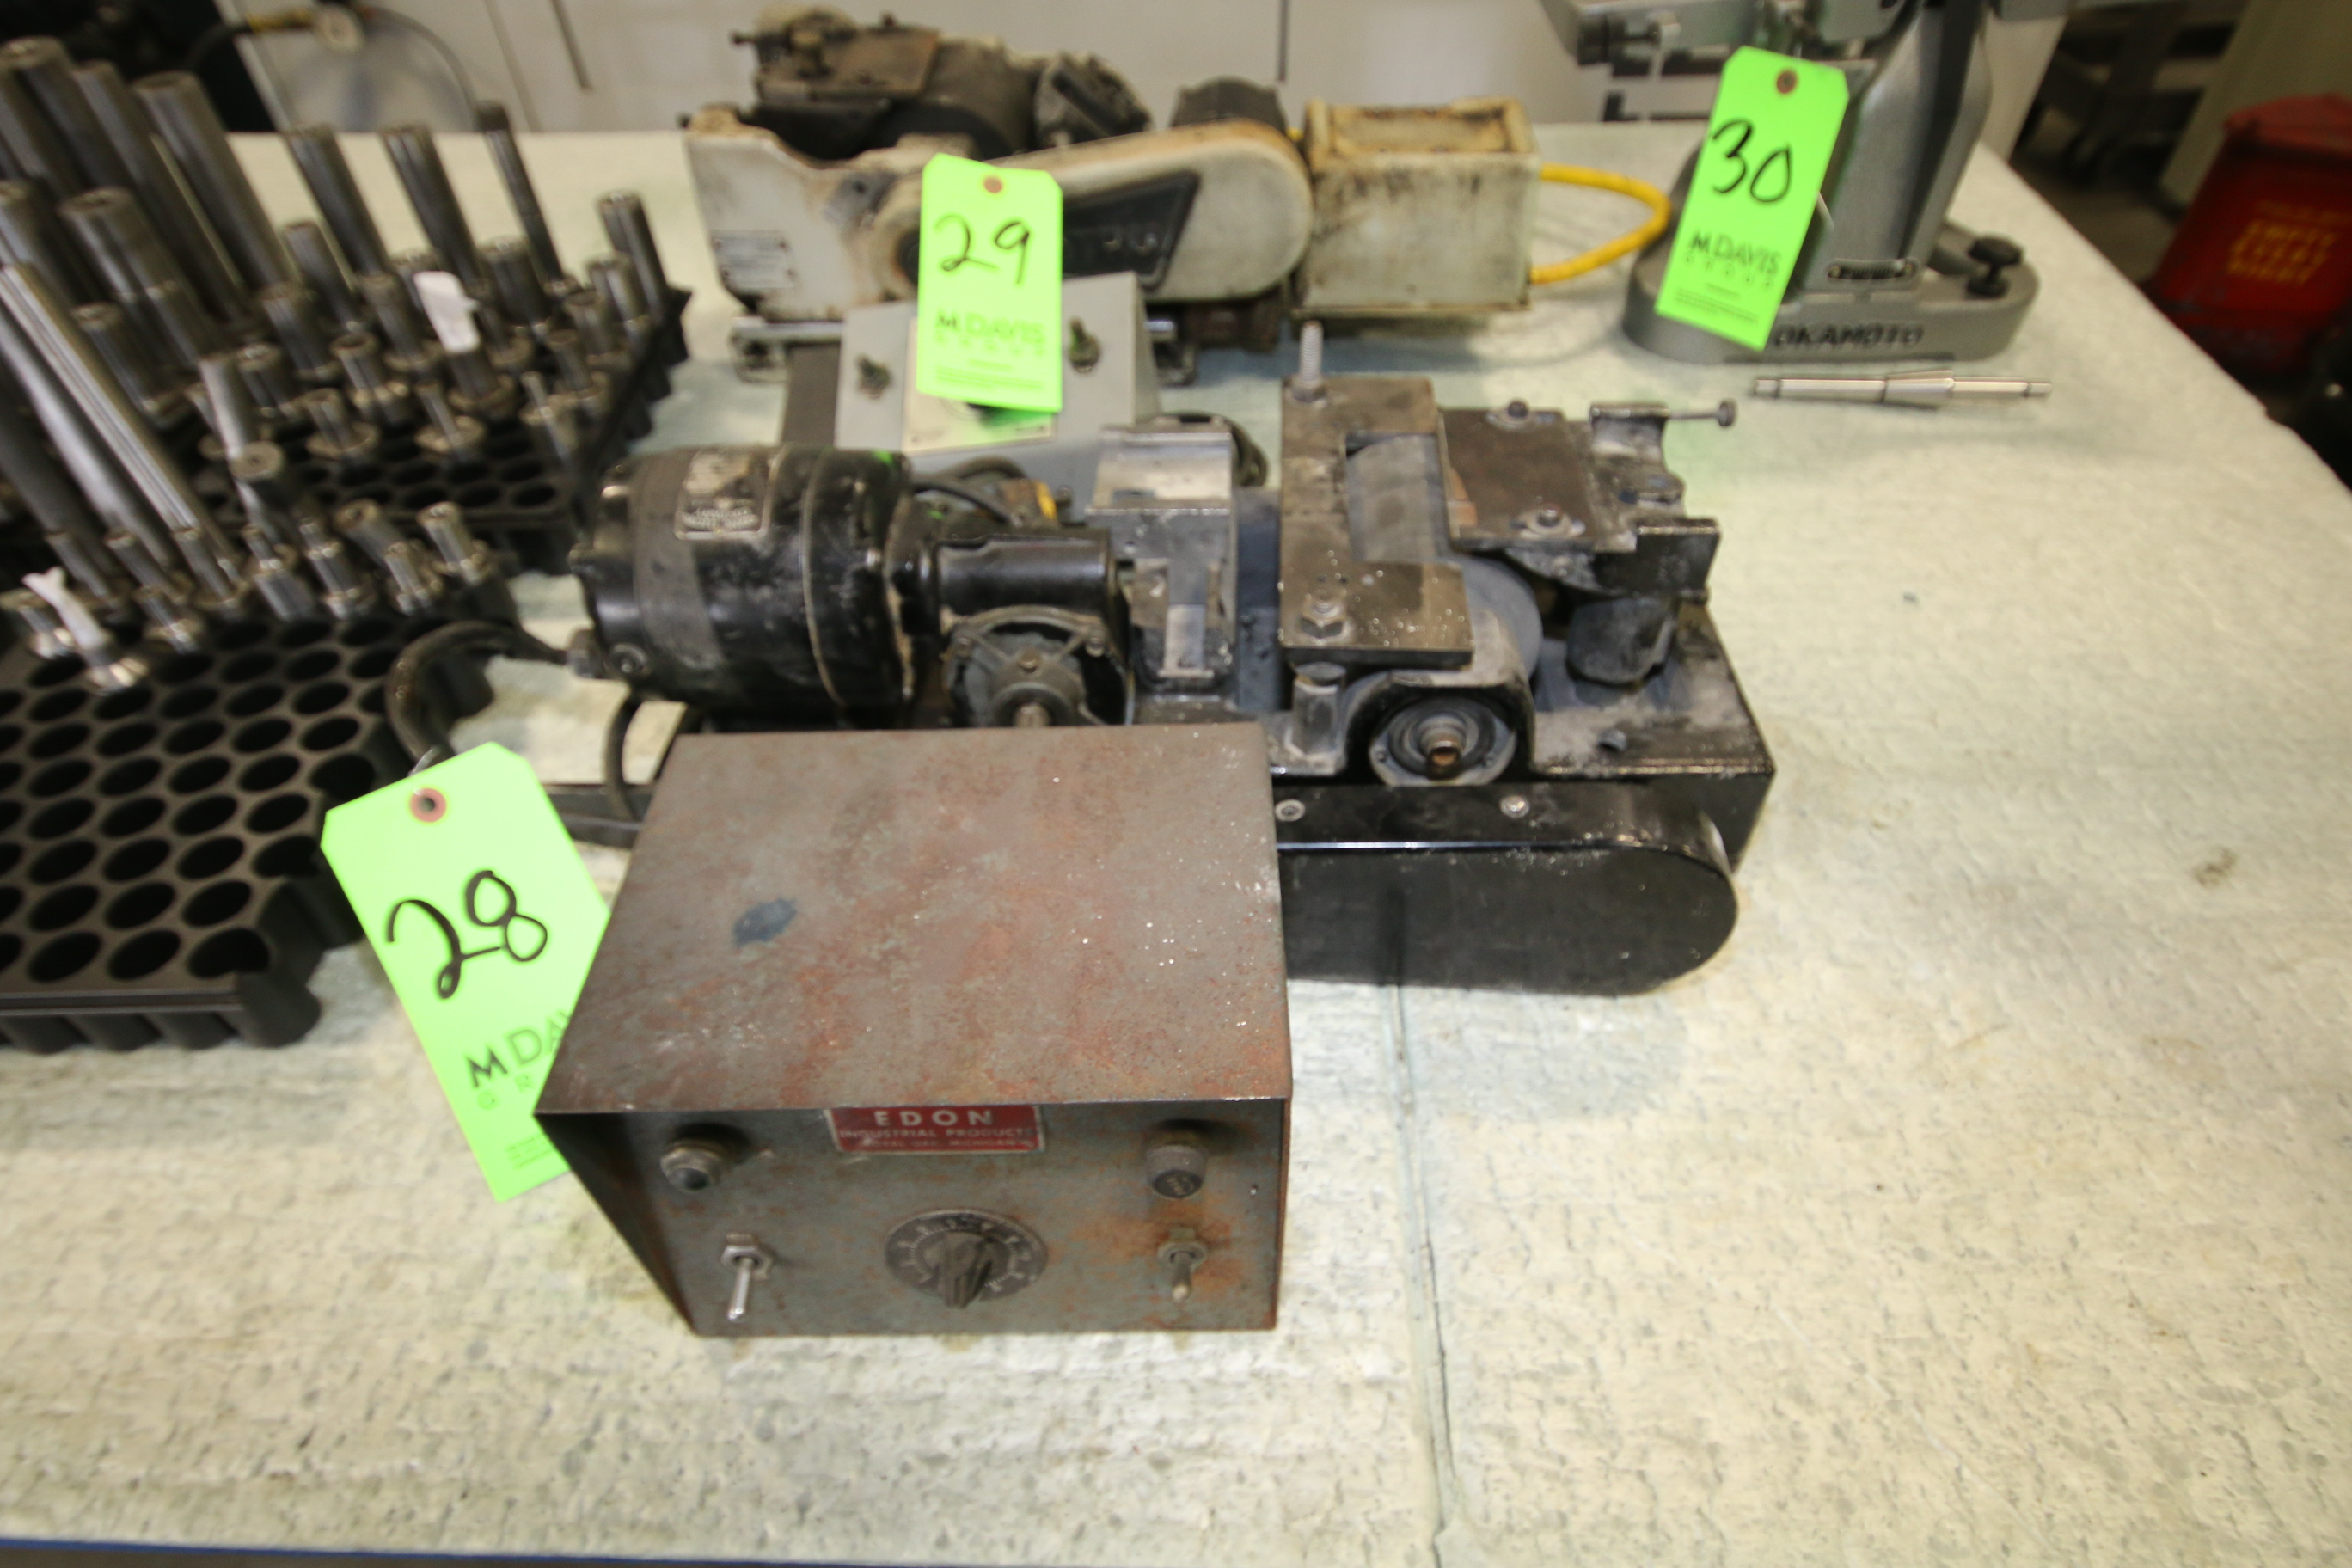 Lot 28 - Dedtru Unit and Power Supply